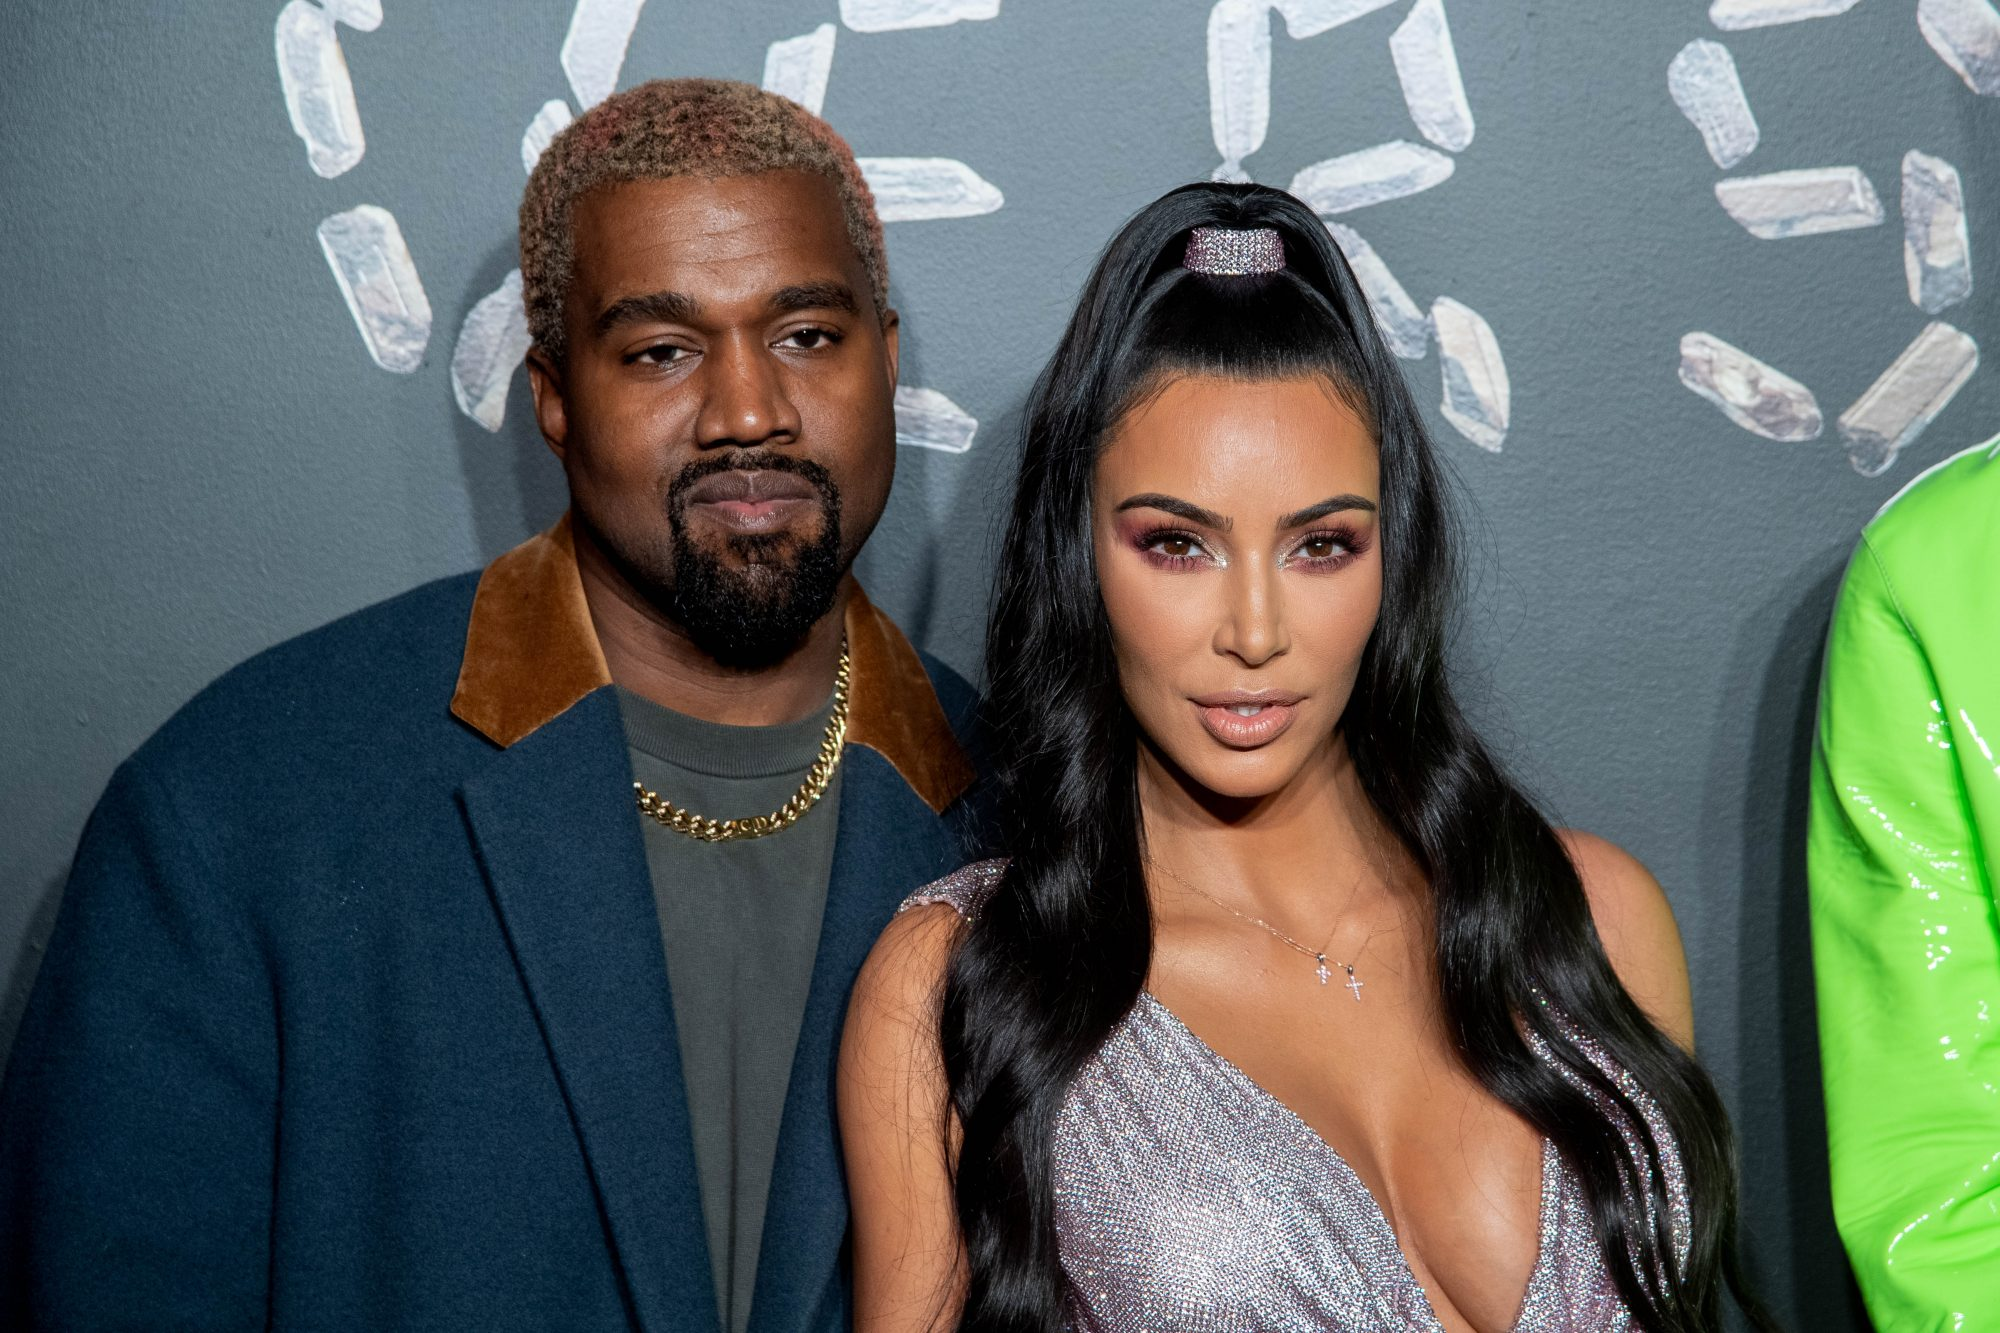 Kim Kardashian and Kanye West Were Reprimanded for Chasing Antelopes in Wyoming